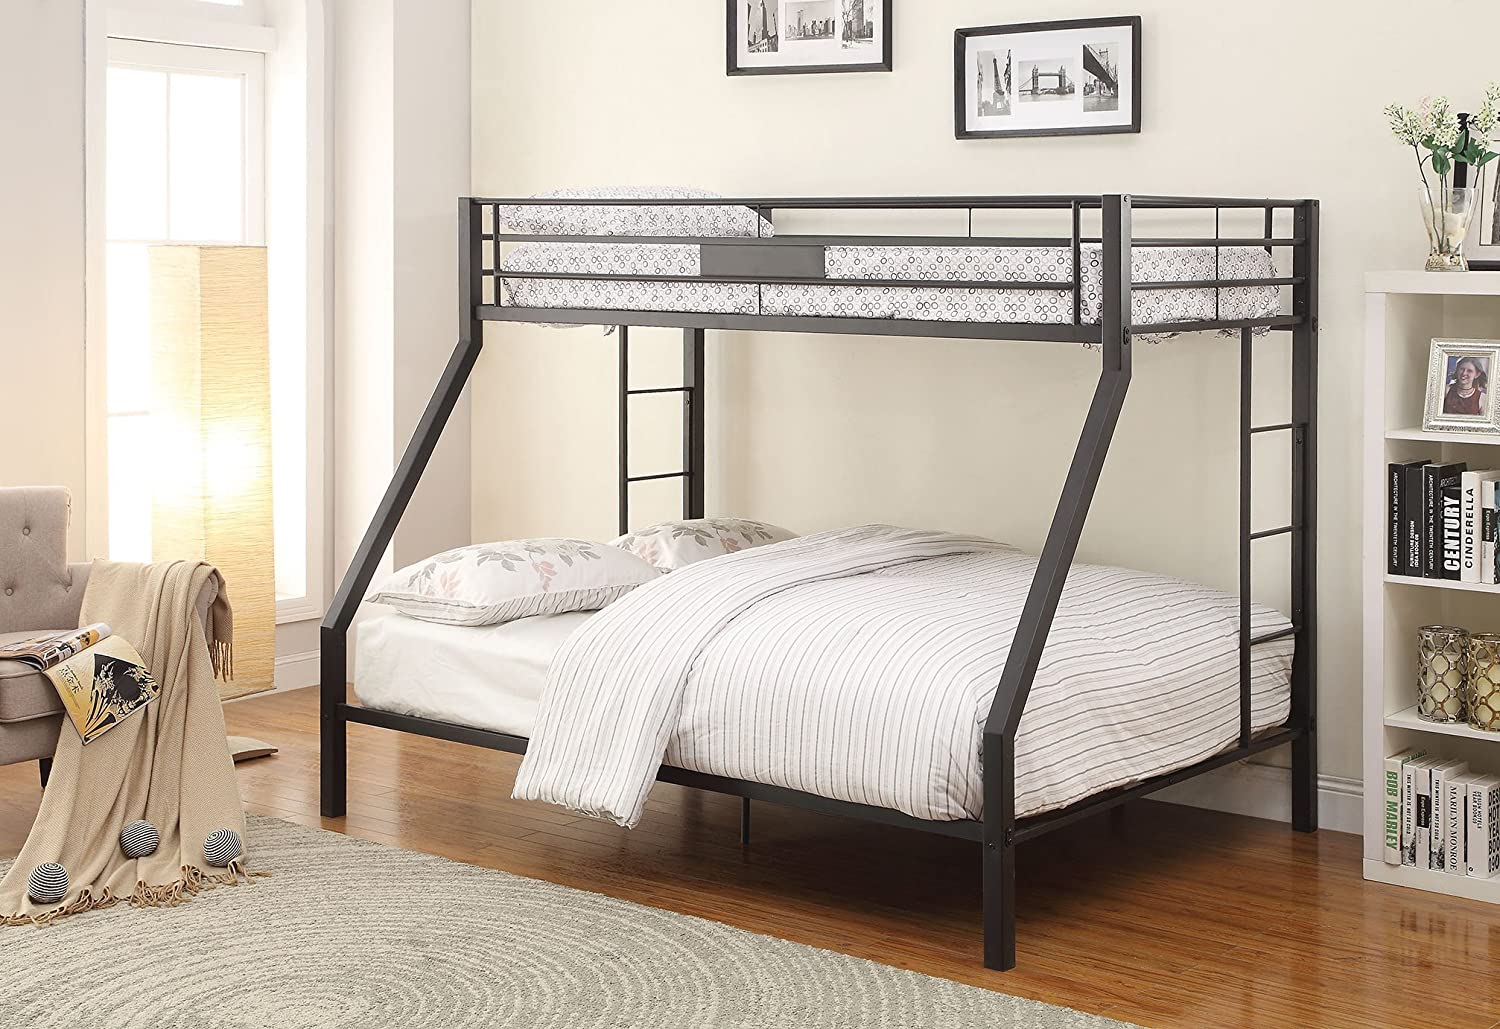 Amazon com  ACME Limbra Black Sand Twin XL over Queen Bunk Bed  Kitchen    Dining. Amazon com  ACME Limbra Black Sand Twin XL over Queen Bunk Bed